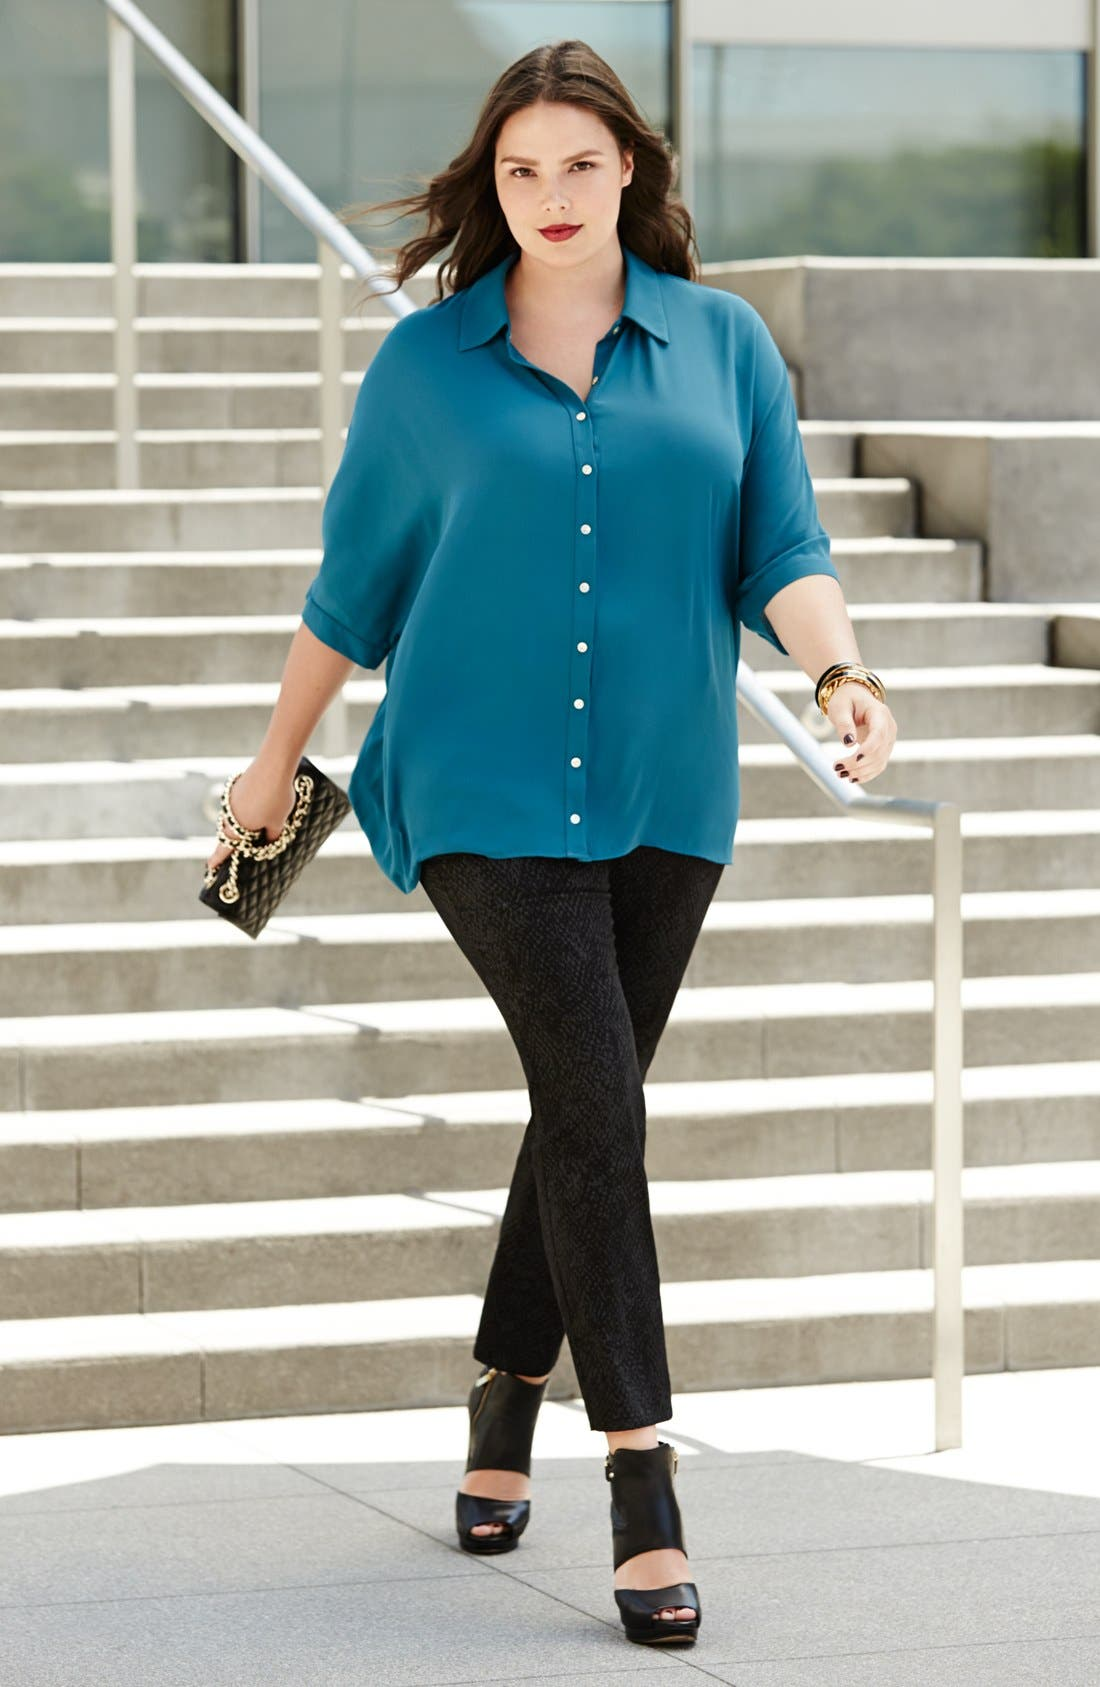 Main Image - Bellatrix Tunic Top & NYDJ Stretch Skinny Jeans (Plus Size)